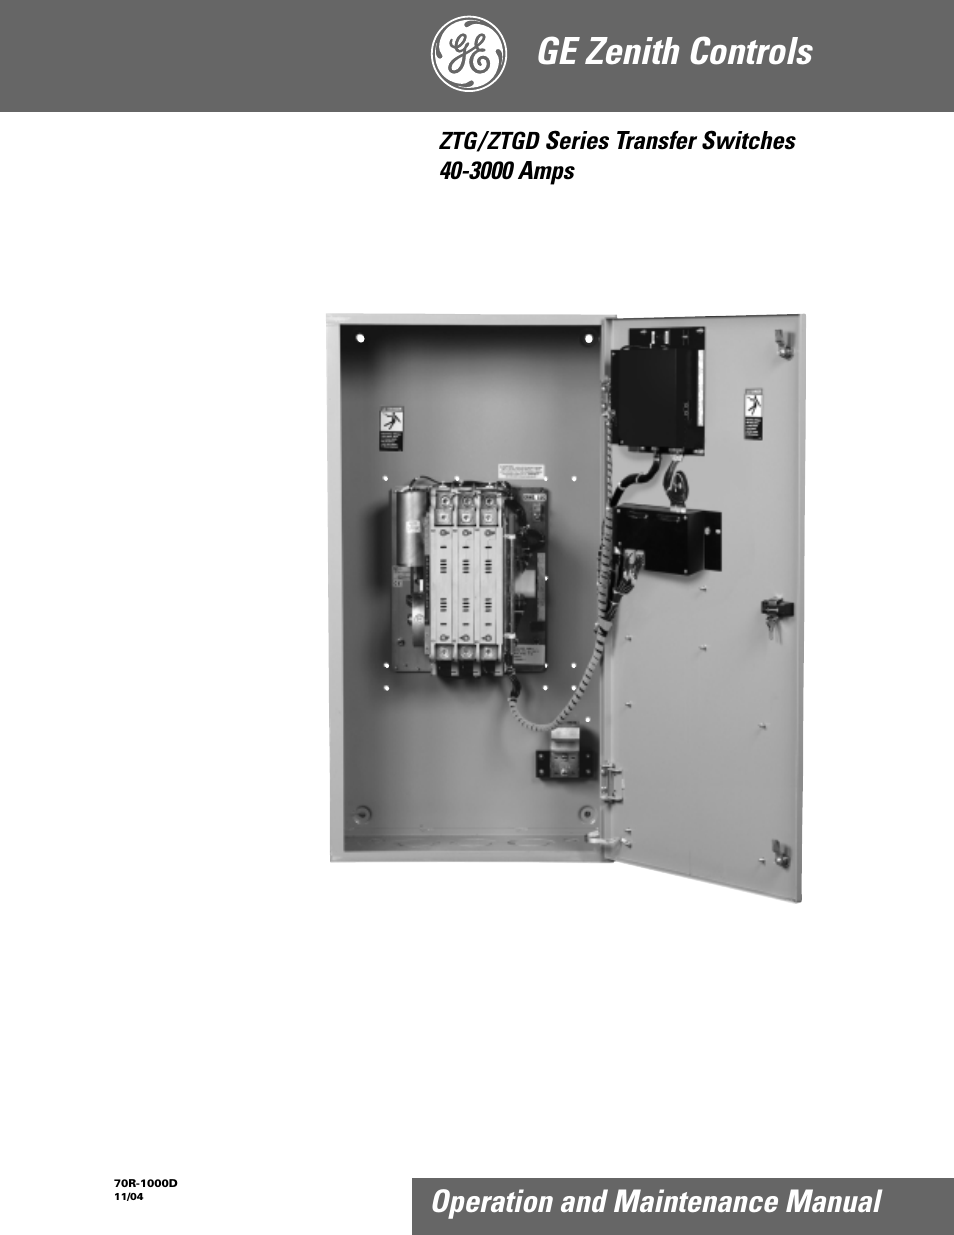 ge ztgd series transfer switches 40 3000 amps user manual 36 pages rh manualsdir com ge zenith manual transfer switch zenith ztg transfer switch manual